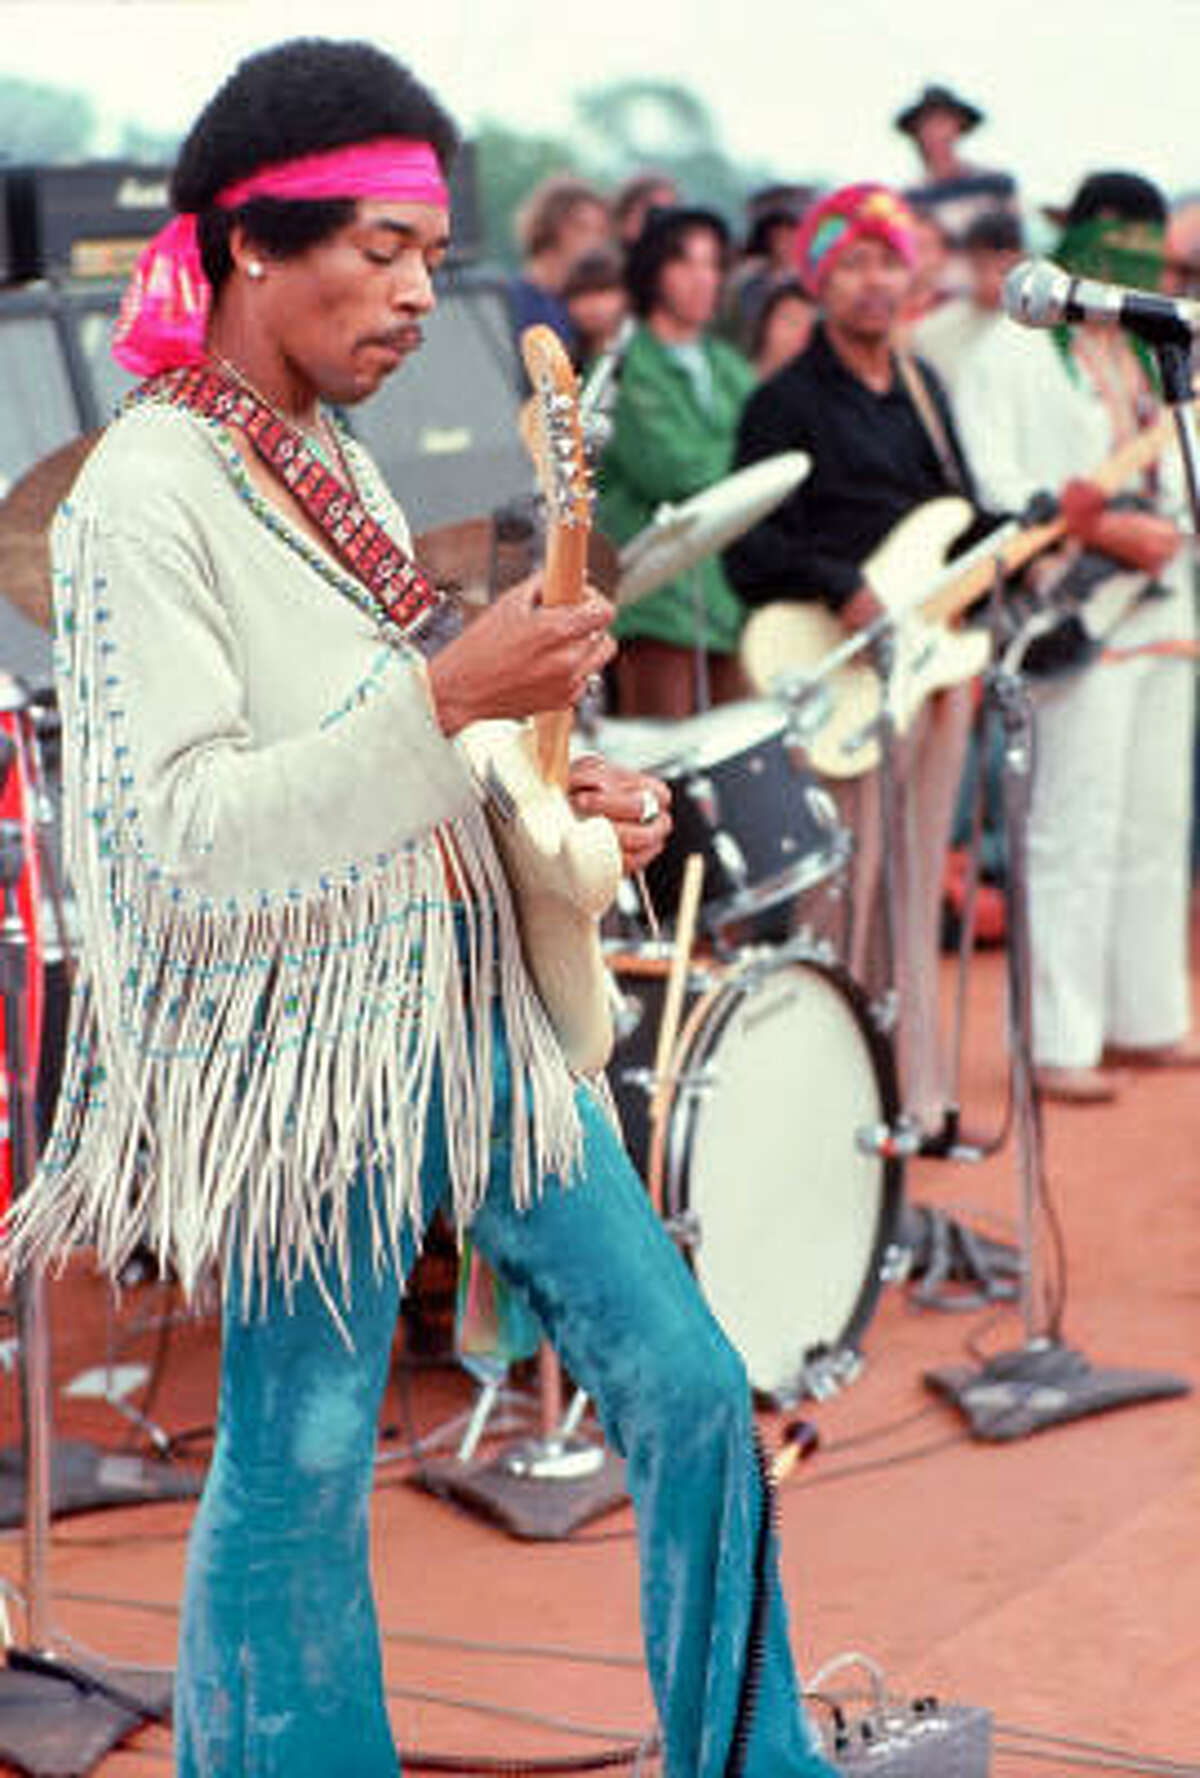 Jimi Hendrix at the original Woodstock festival in Bethel, New York in August 1969. Thirty-two of the best-known musicians of the day appeared during the weekend in front of nearly half a million people, southwest of the town of Woodstock, New York. Read why Hendrix's interpretation of The Star-Spangled Banner is still relevant today.